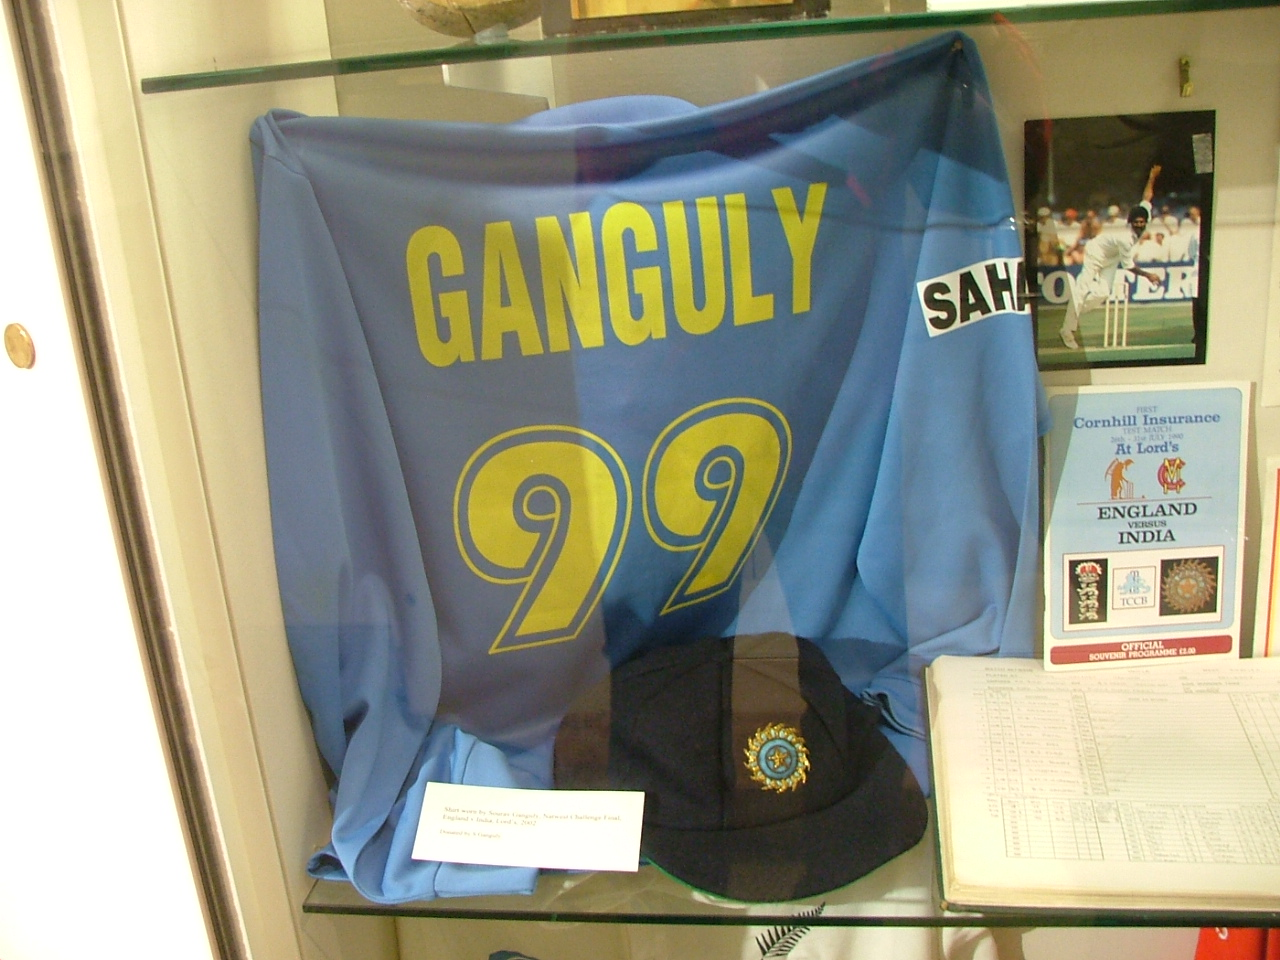 "A blue colored t-shirt displayed at a store window. The t-shirt has the words ""Ganguly"" and the number 99 below it, both in yellow color. Beside the t-shirt, a picture and an open book is visible."